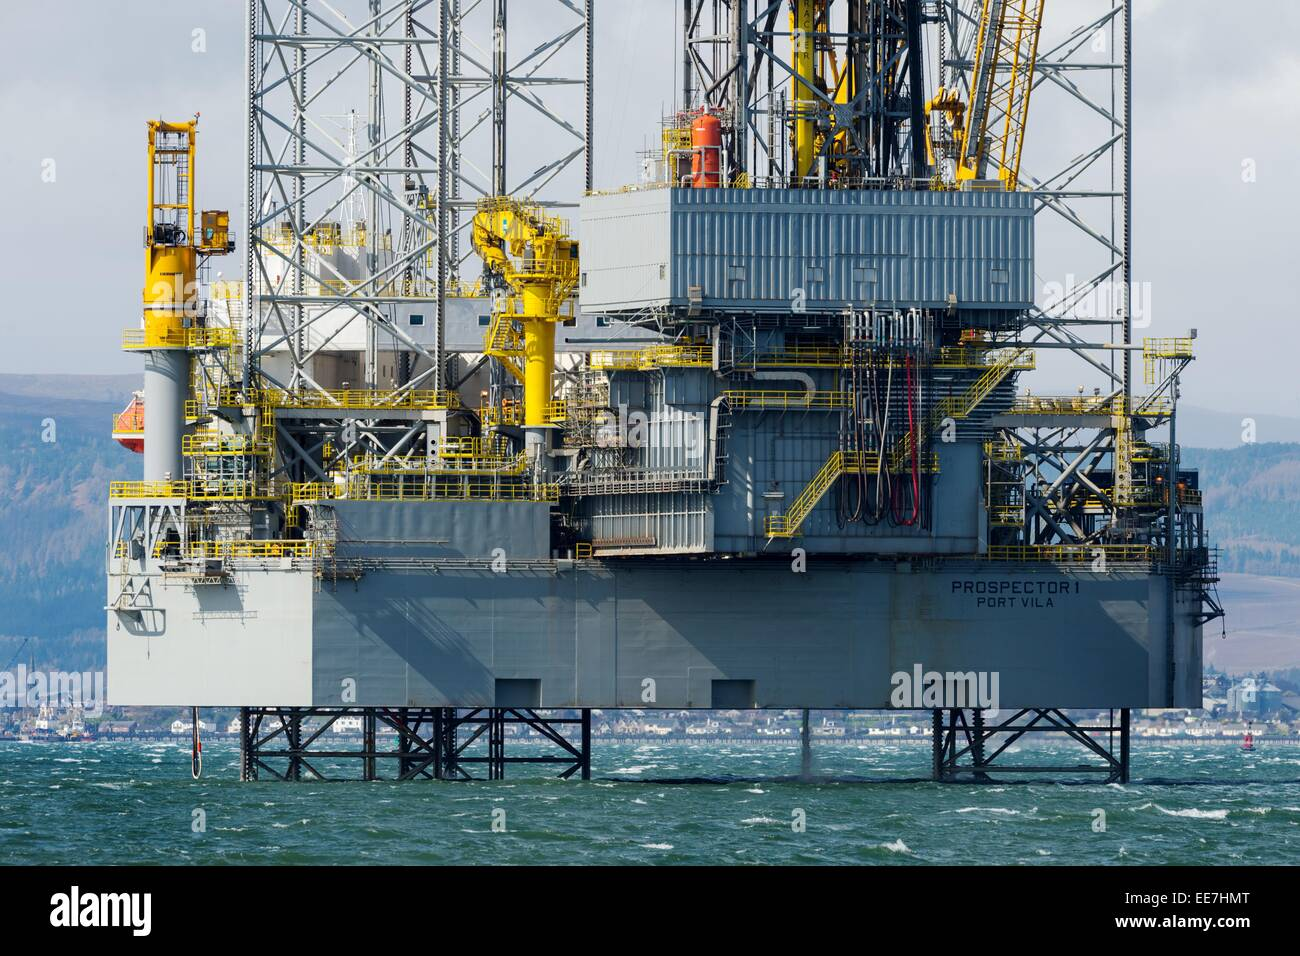 Offshore drilling rig Prospector 1 moored in the Cromarty Firth, Scotland, with the town of Invergordon in the background. - Stock Image